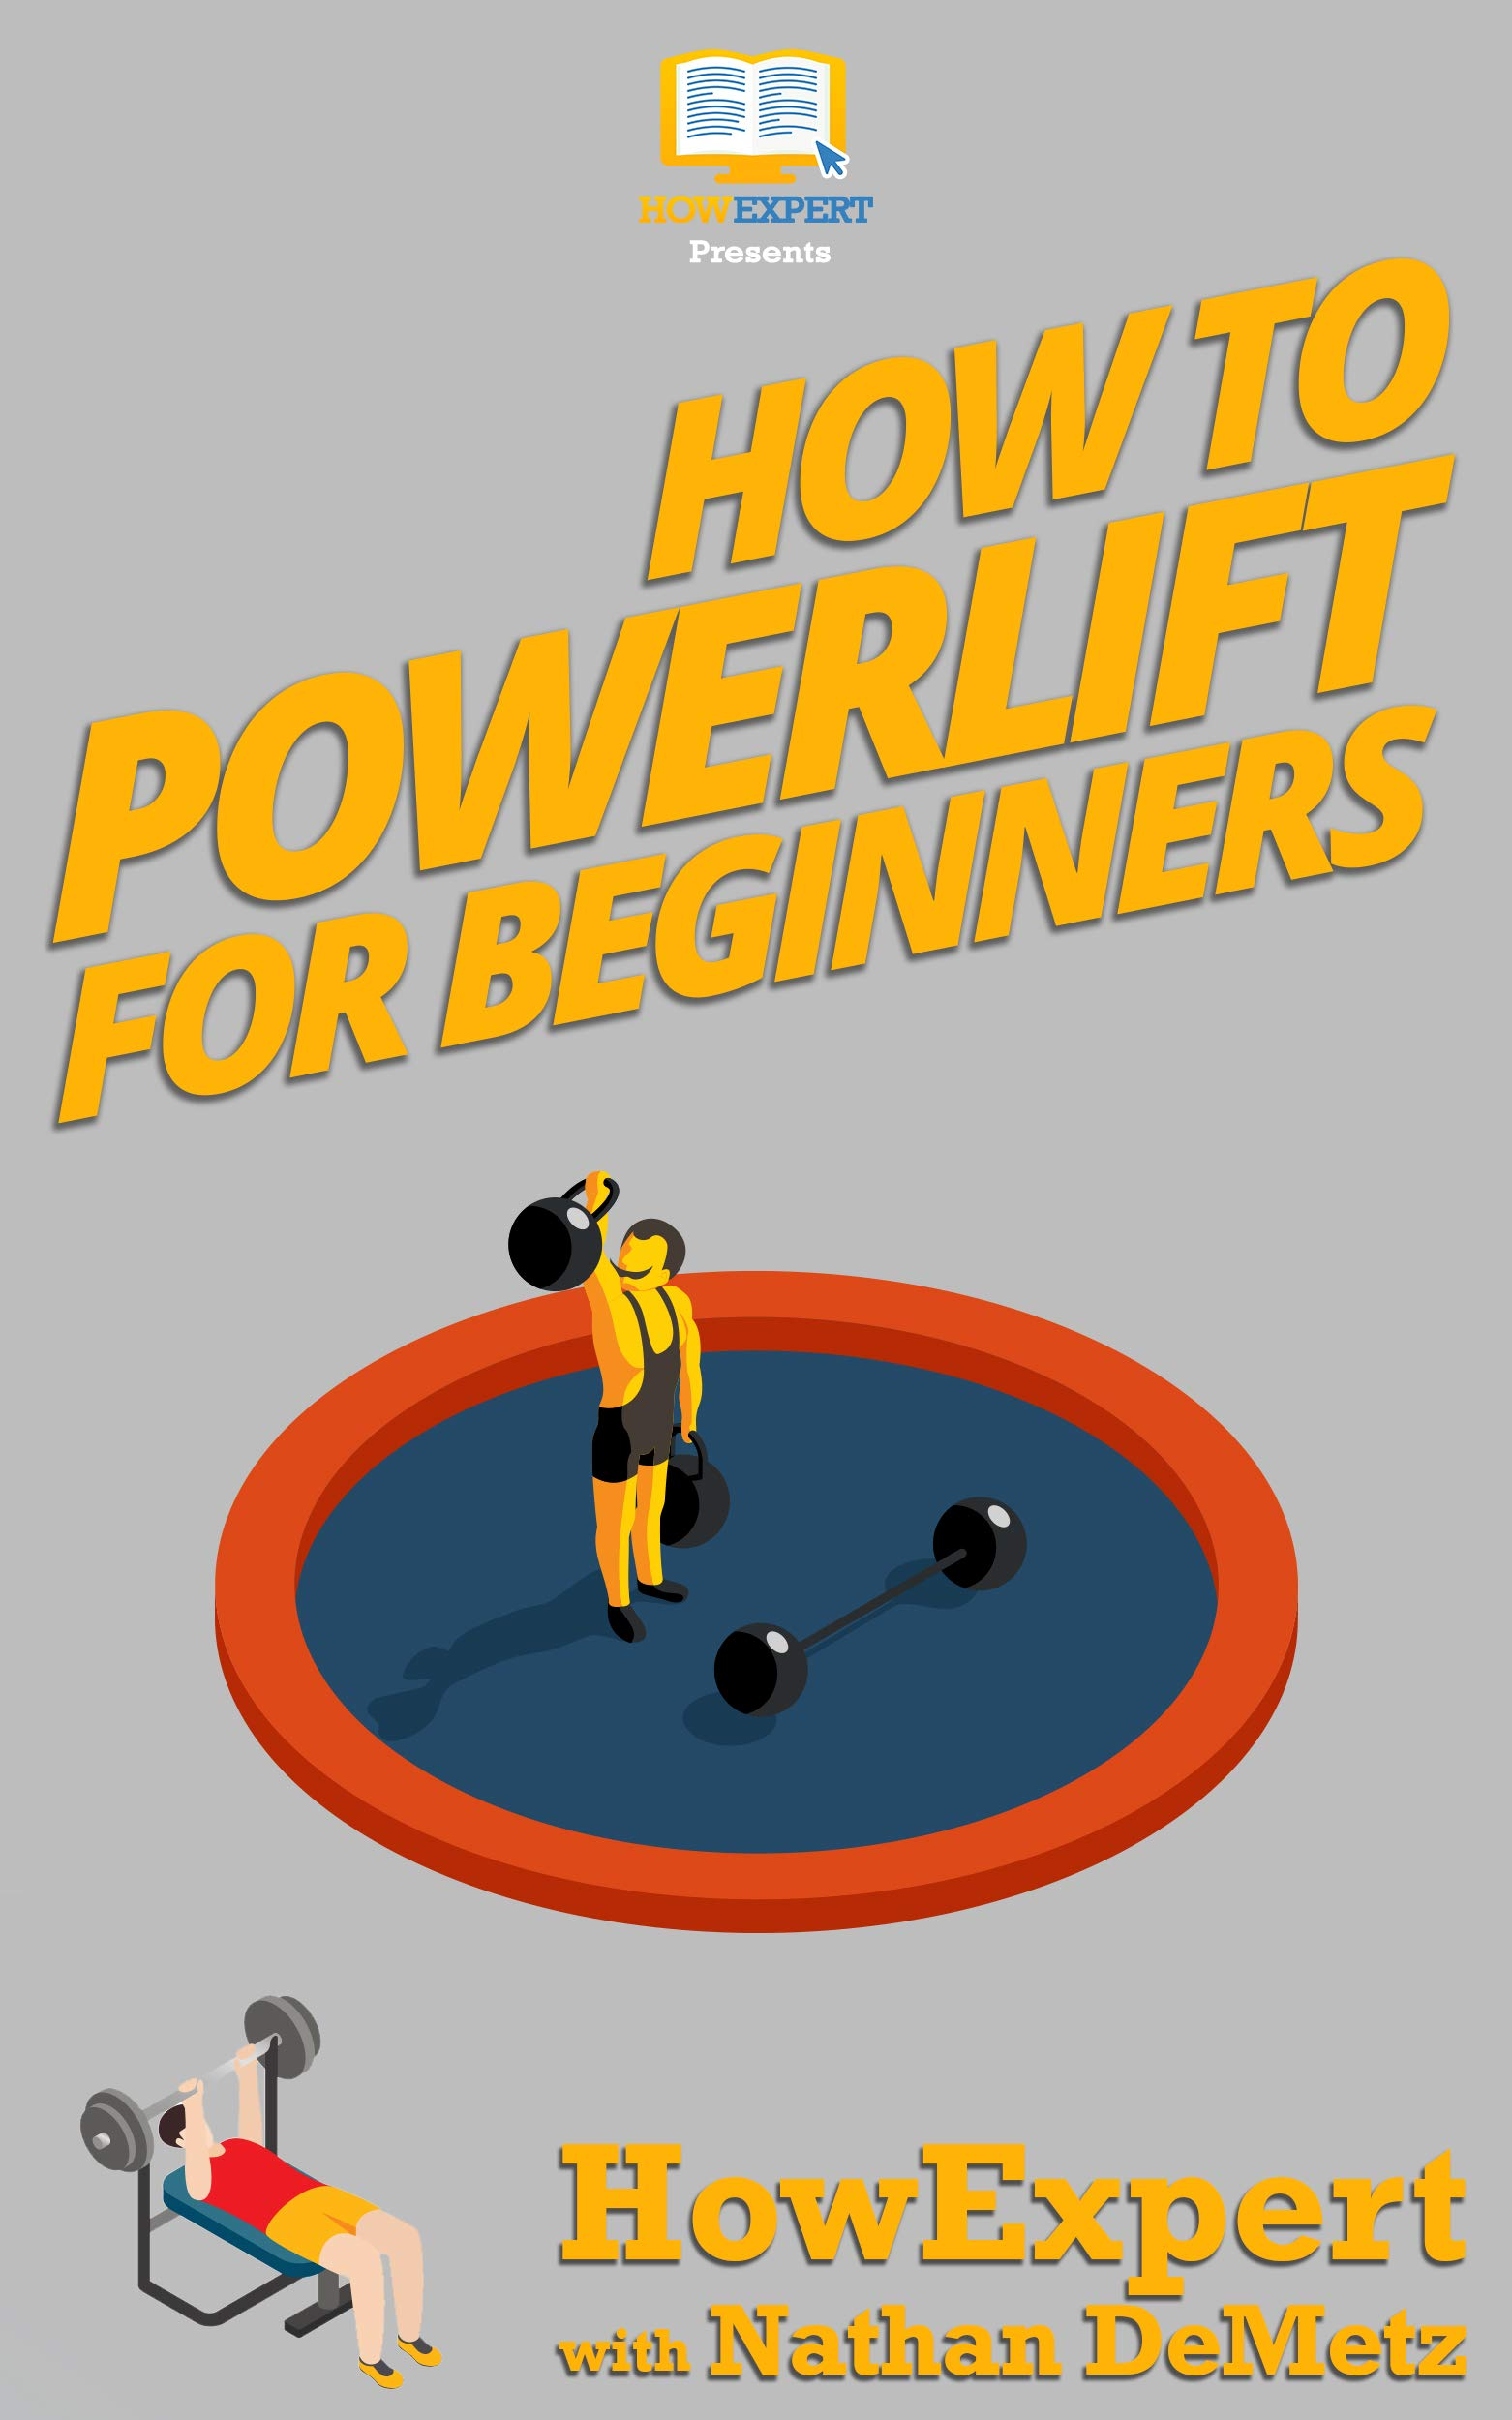 How To Powerlift For Beginners: Your Step-By-Step